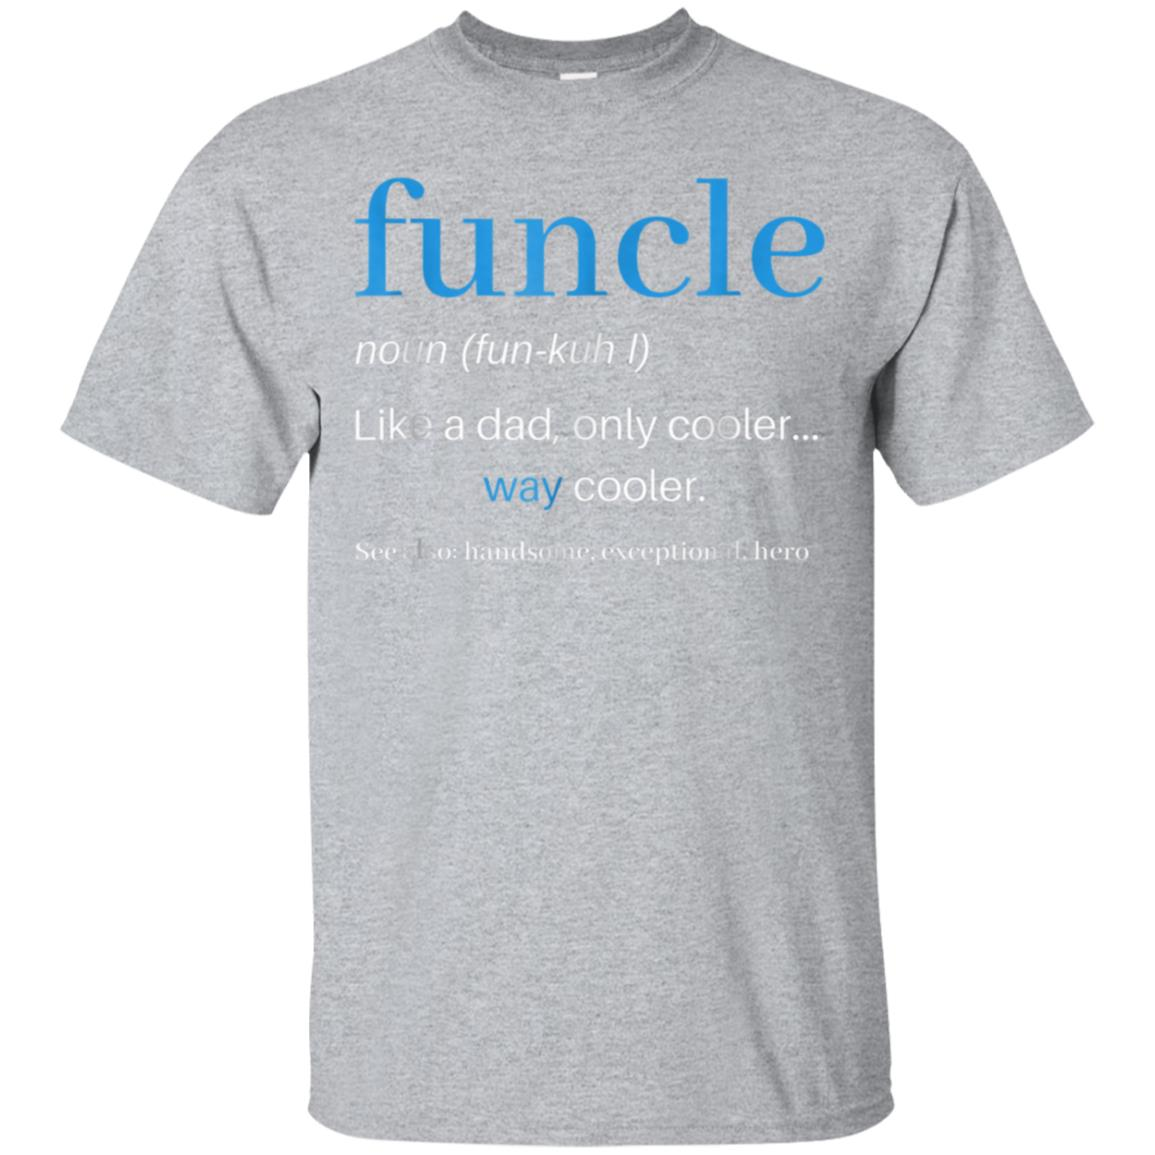 Funcle T-Shirt Like A Dad Only Cooler Uncle Men Definition 99promocode